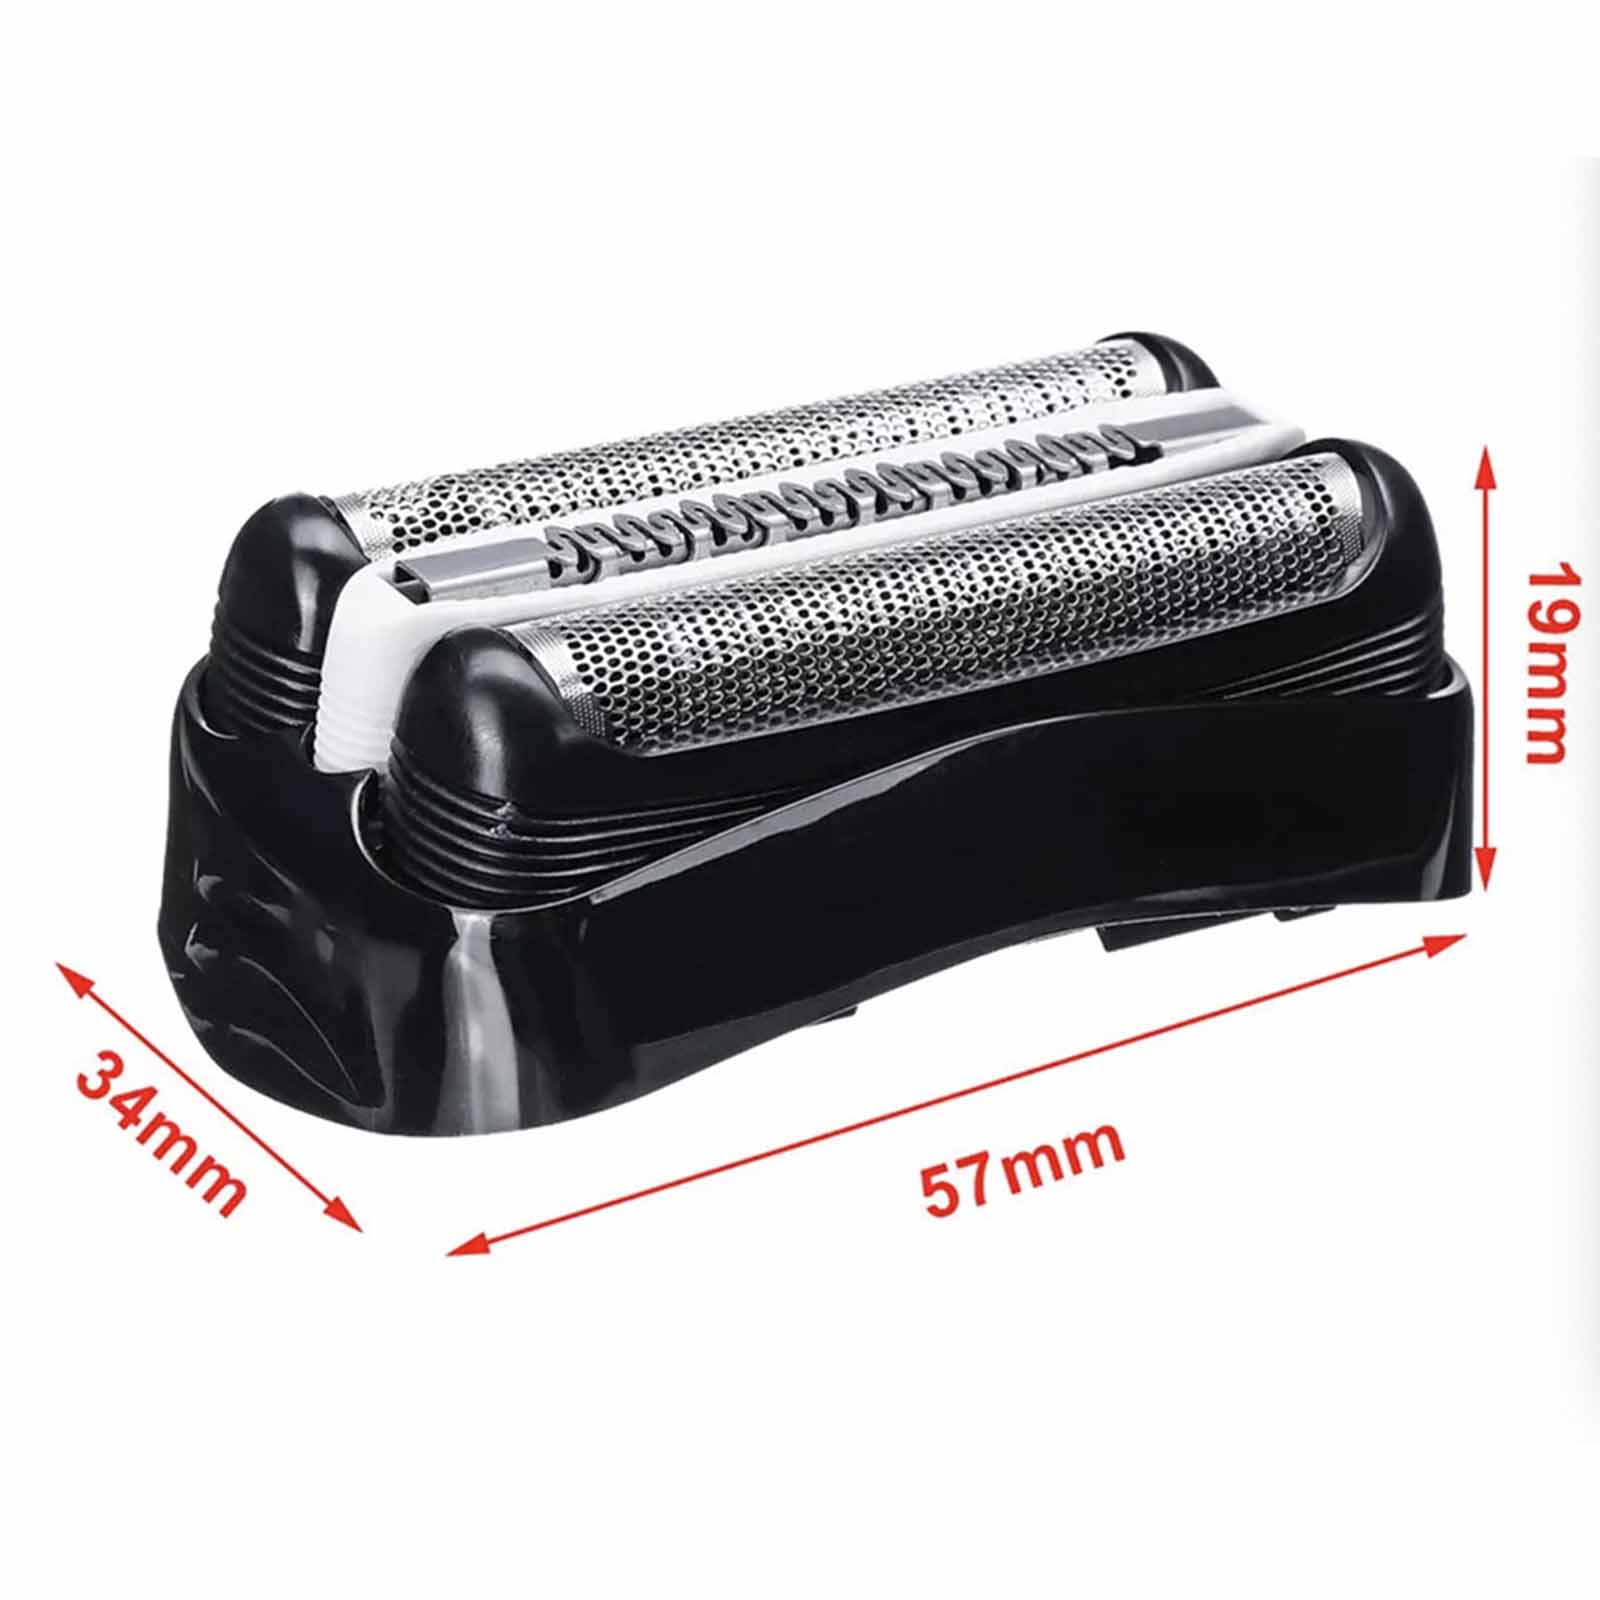 Image 5 - For Braun Electric Shaver Head Accessories Foil Cutter Head Cassette 32B 32S for Braun Electric Razor Shaver Series 3 320 330-in Personal Care Appliance Parts from Home Appliances